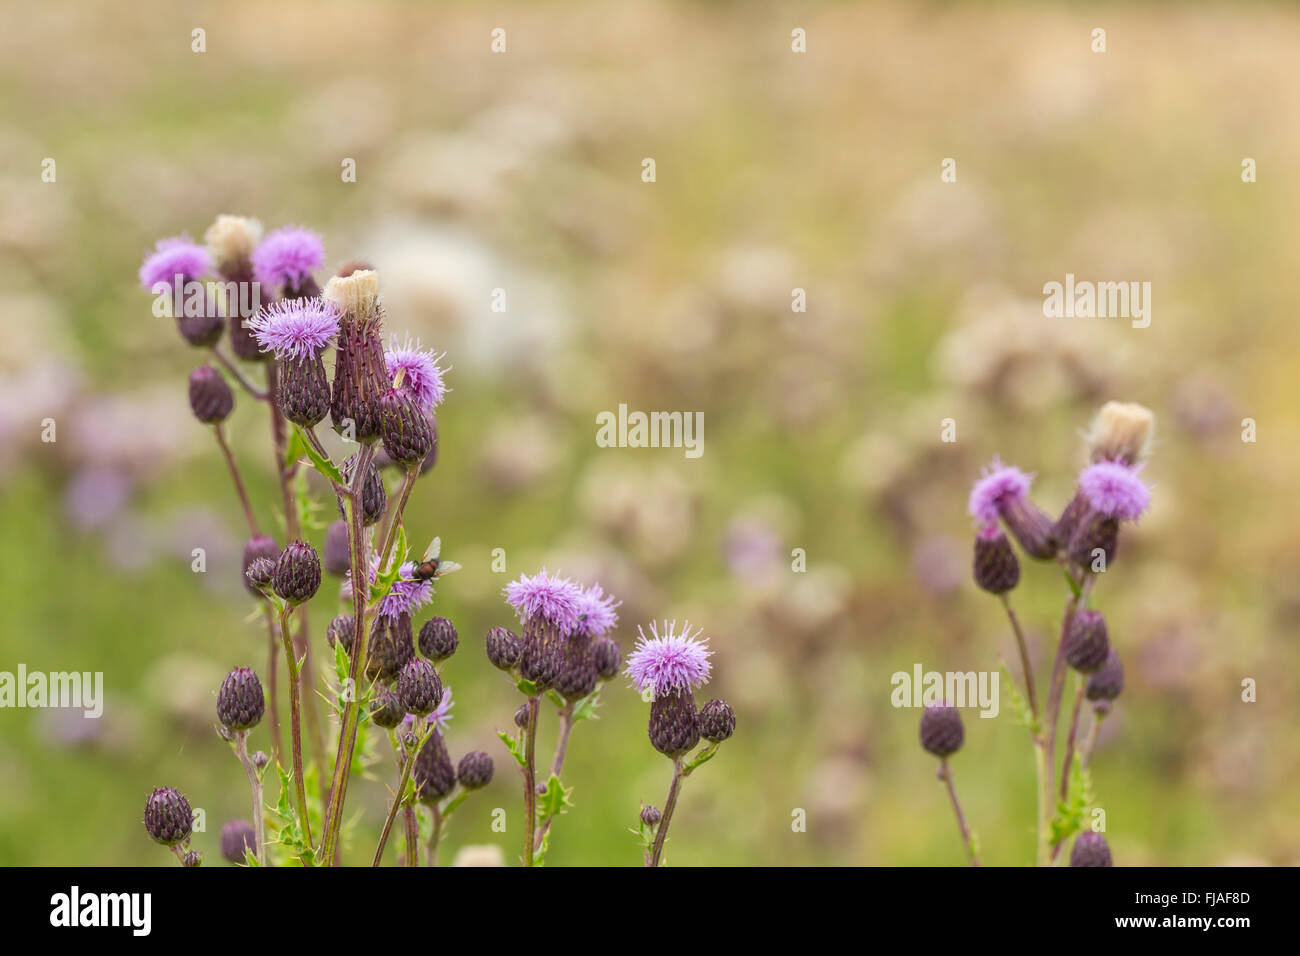 Flower heads of Creeping thistle (Cirsium arvense) - Stock Image